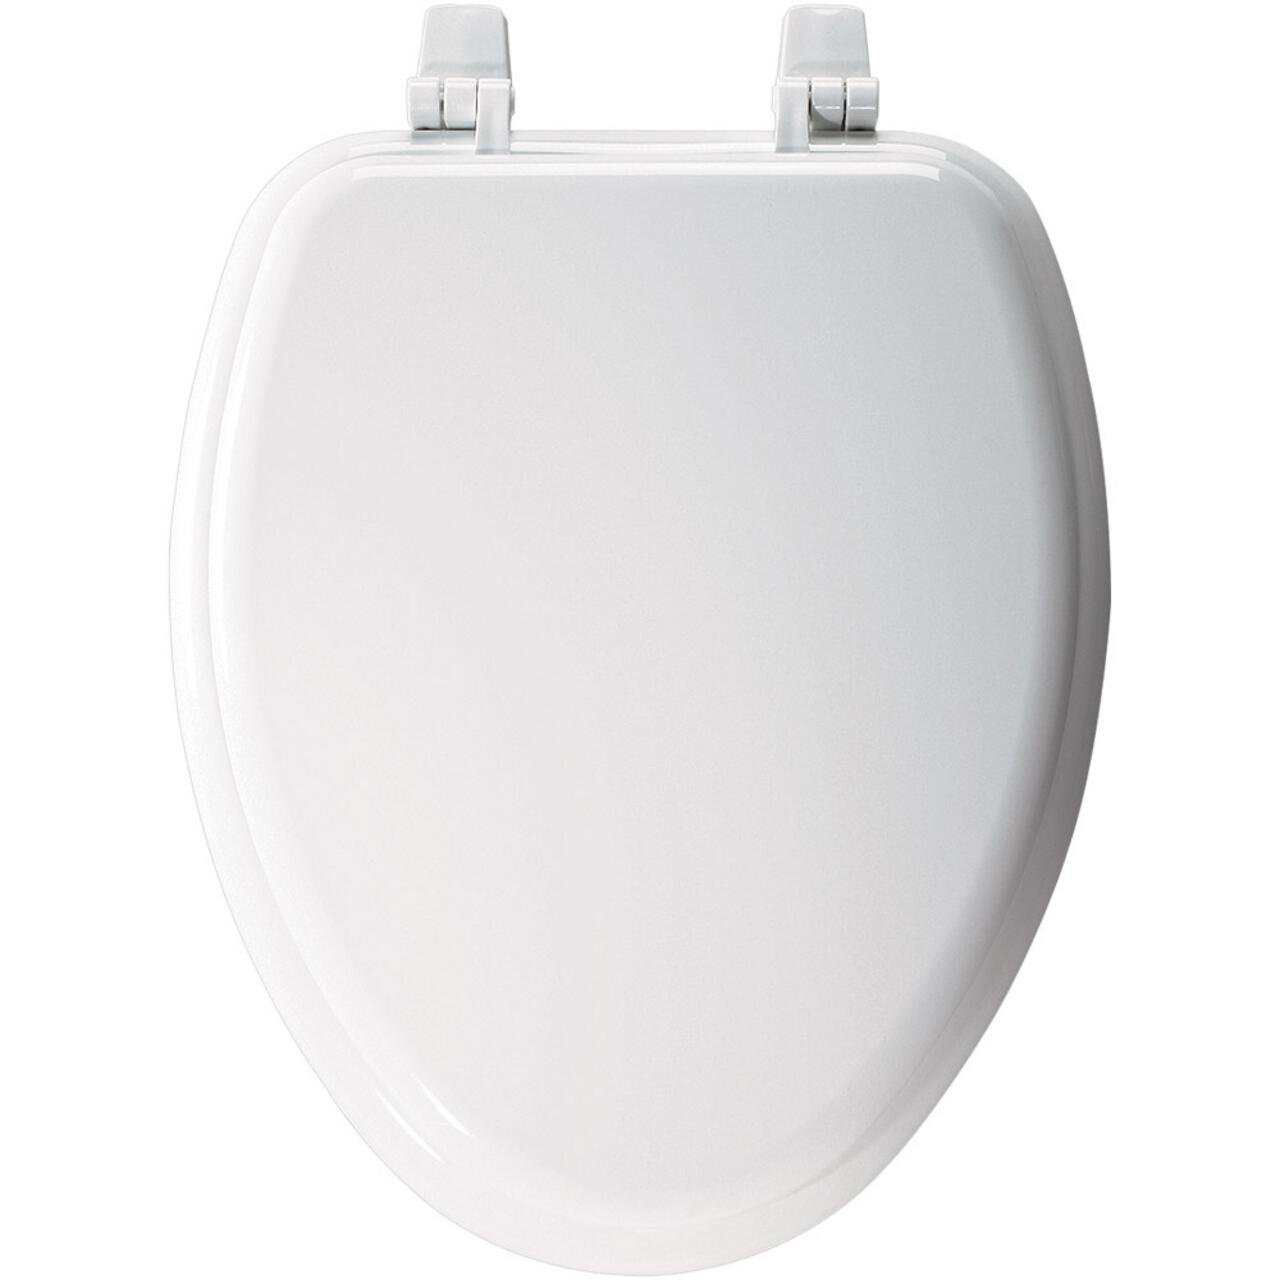 Church 1400TTC 000 Elongated Wood Toilet Seat with Cover  White      Amazon comChurch 1400TTC 000 Elongated Wood Toilet Seat with Cover  White  . Oblong Toilet Seat Cover. Home Design Ideas